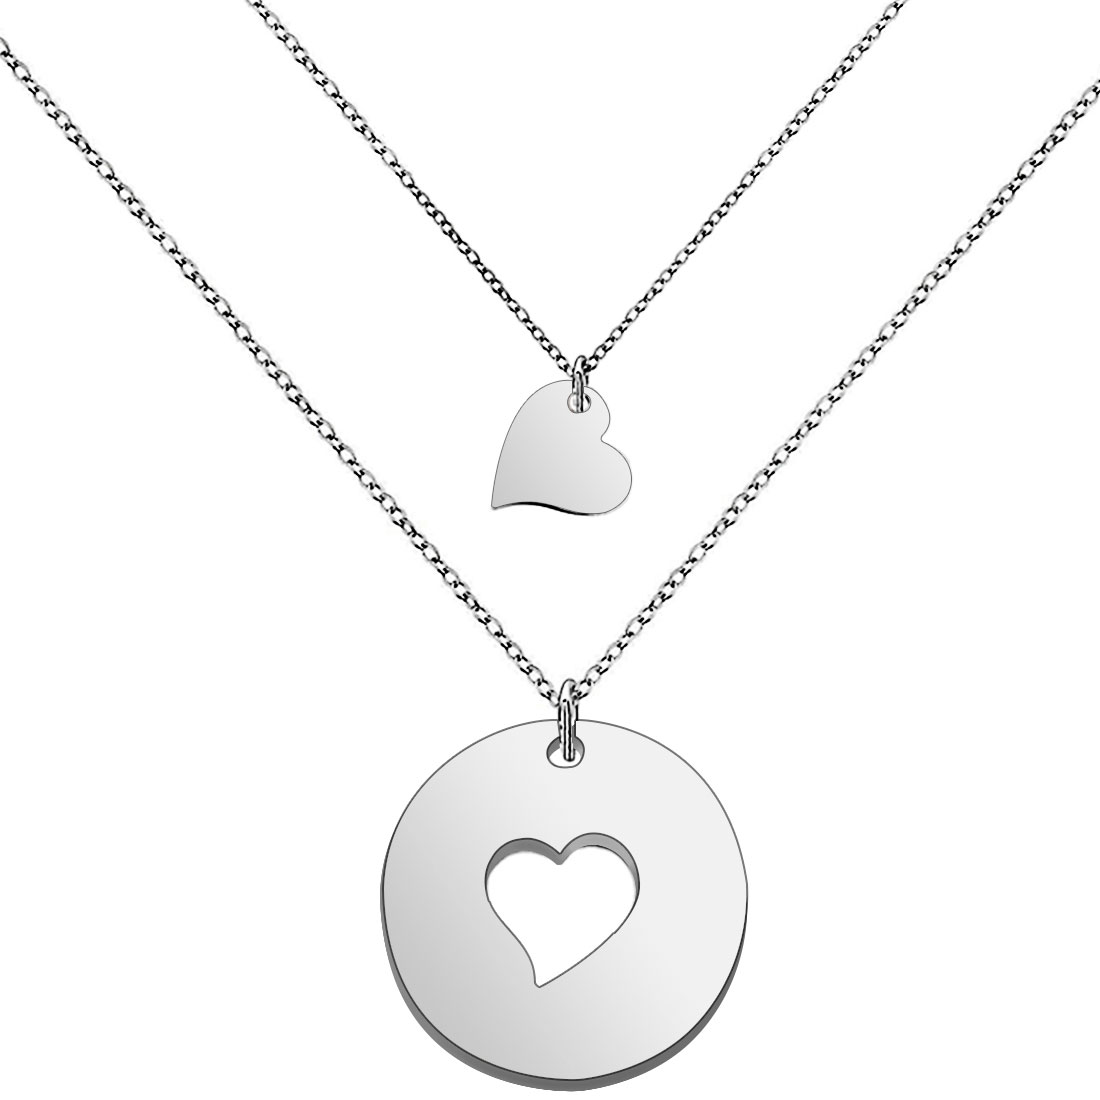 Mother and Child Silver Shade Necklace Jewellery Gift Idea for Mother/'s Day